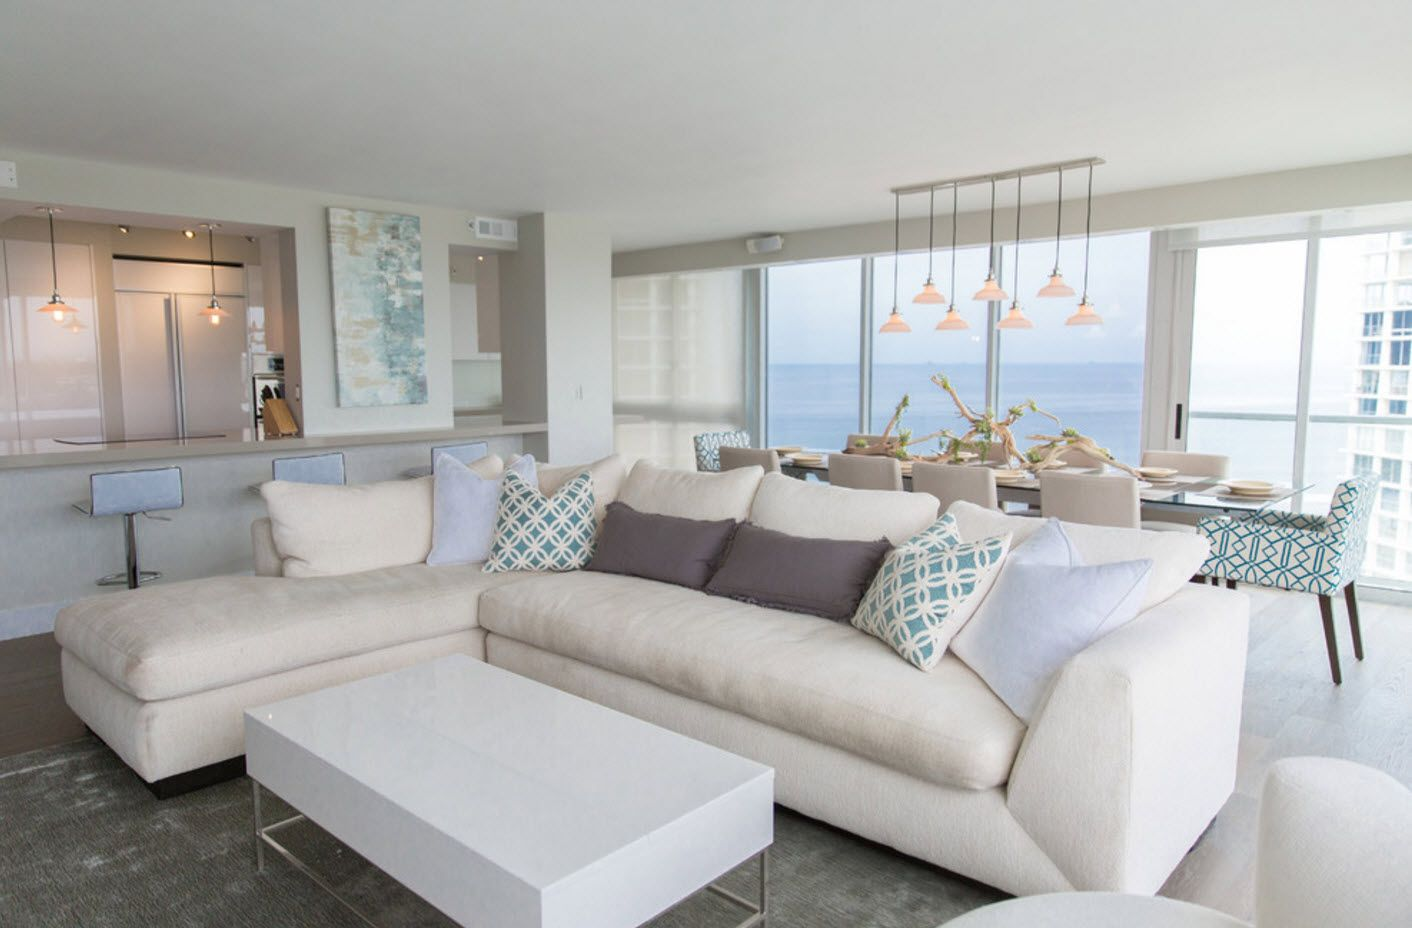 Oceanside apartment with modeular sofa and white trimming